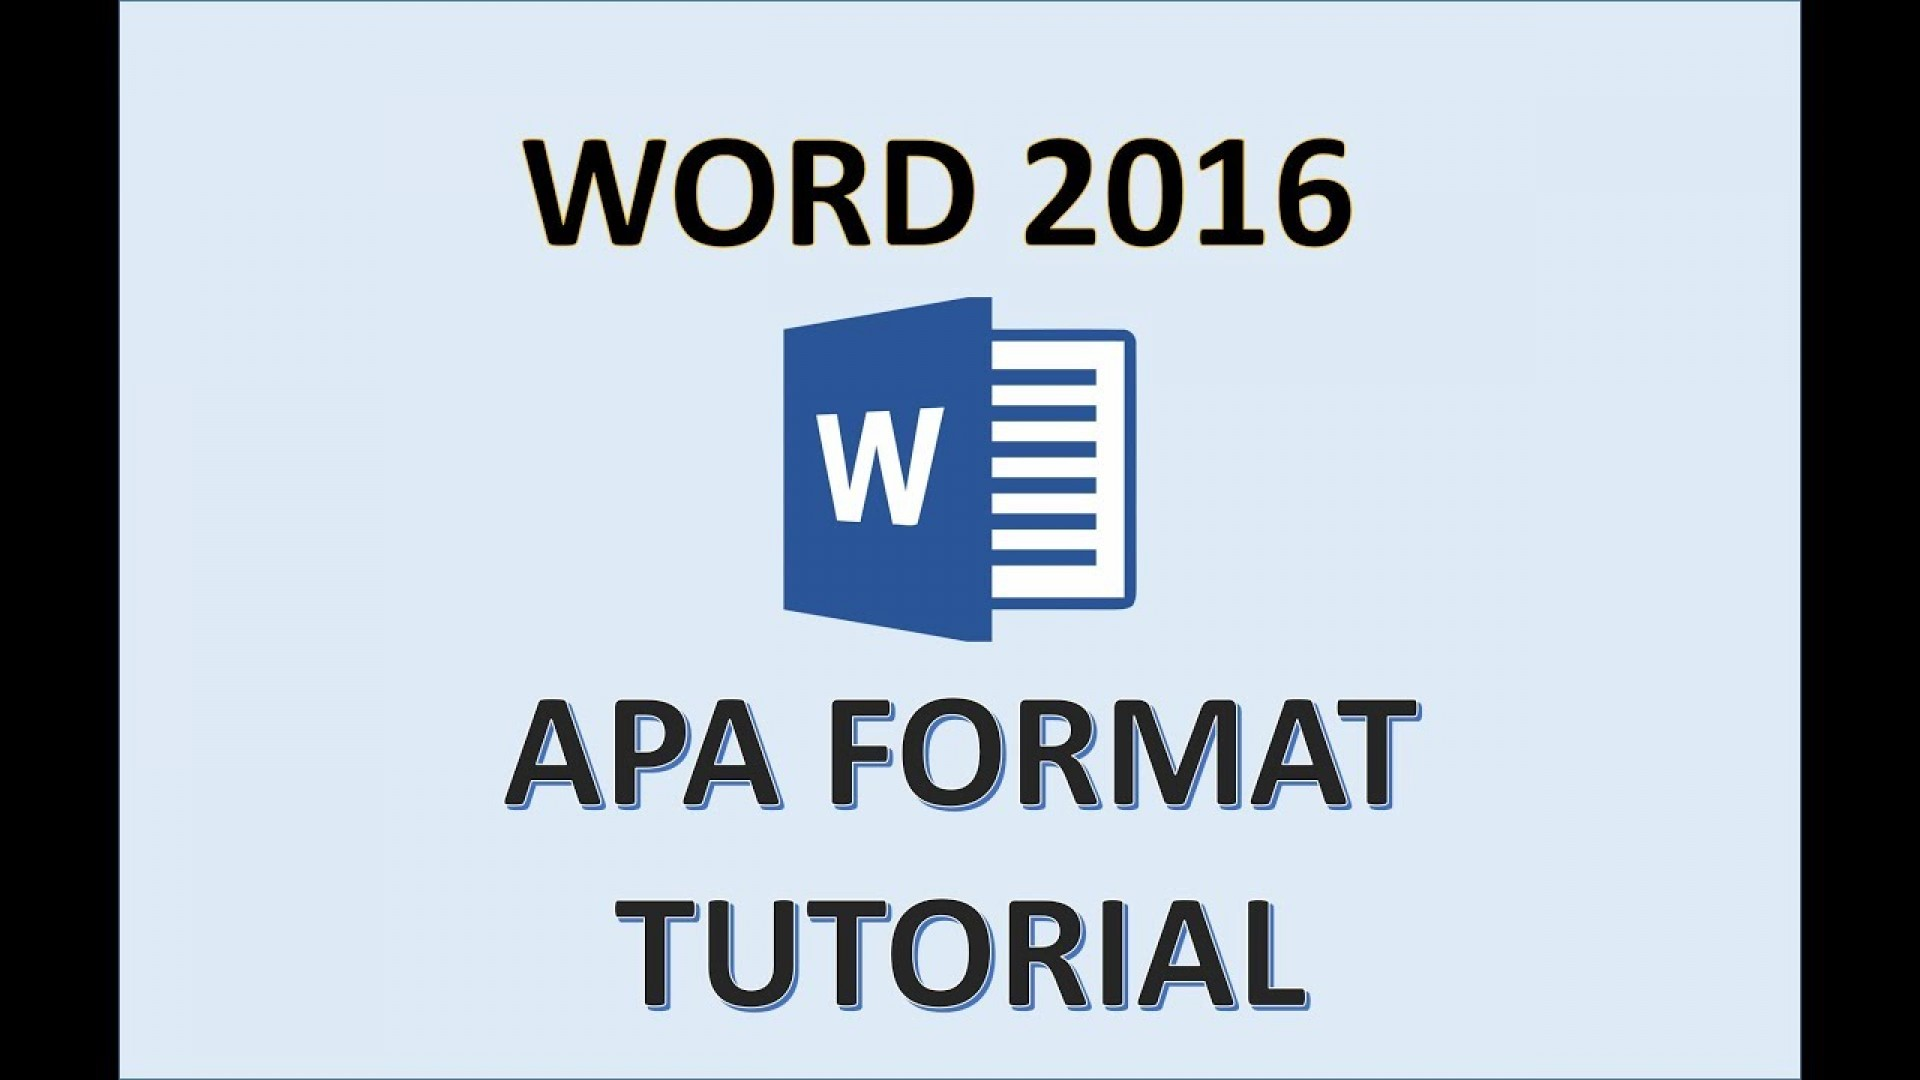 023 Maxresdefault How To Write References In Research Paper Awful Ppt 1920